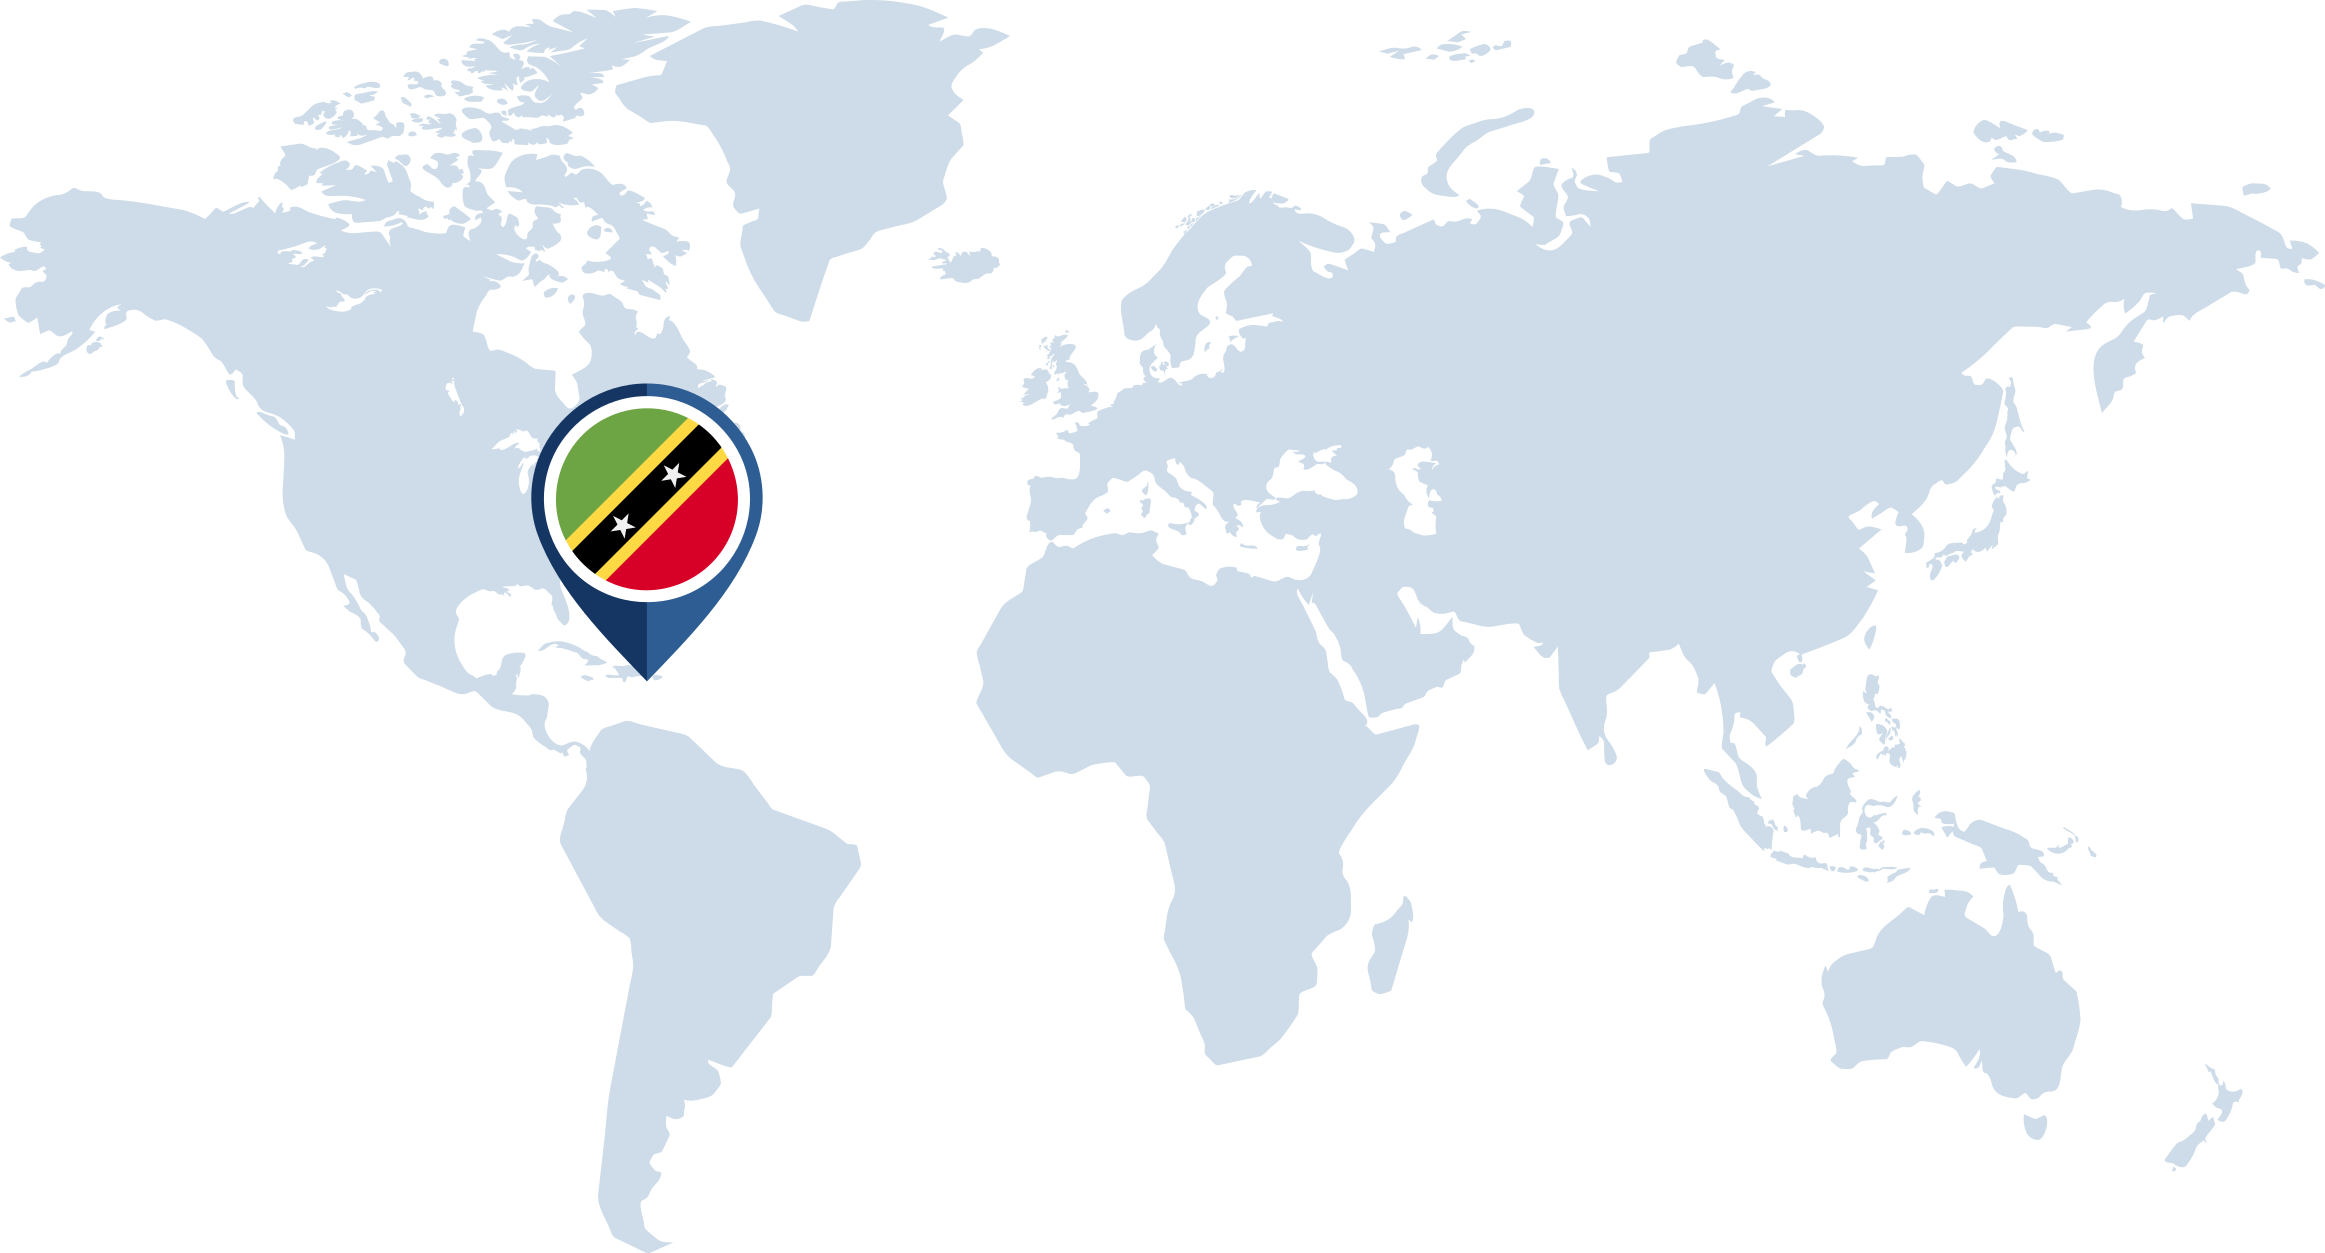 https://www.bluemina.com/wp-content/uploads/2020/01/Saint-Kitts-and-Nevis-Location.png